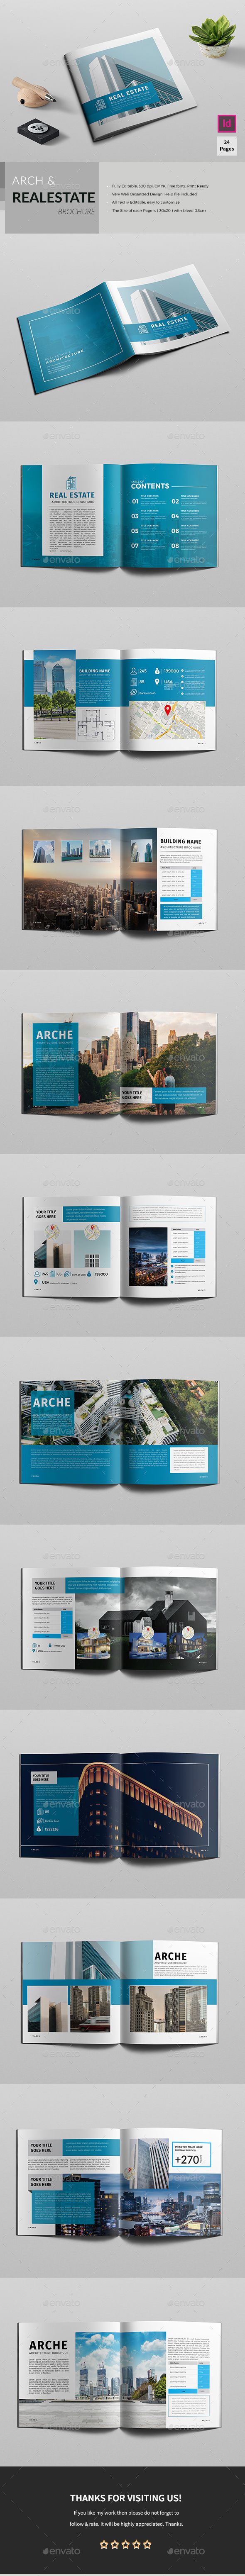 Square Realestate/Architecture Brochure - Corporate Brochures